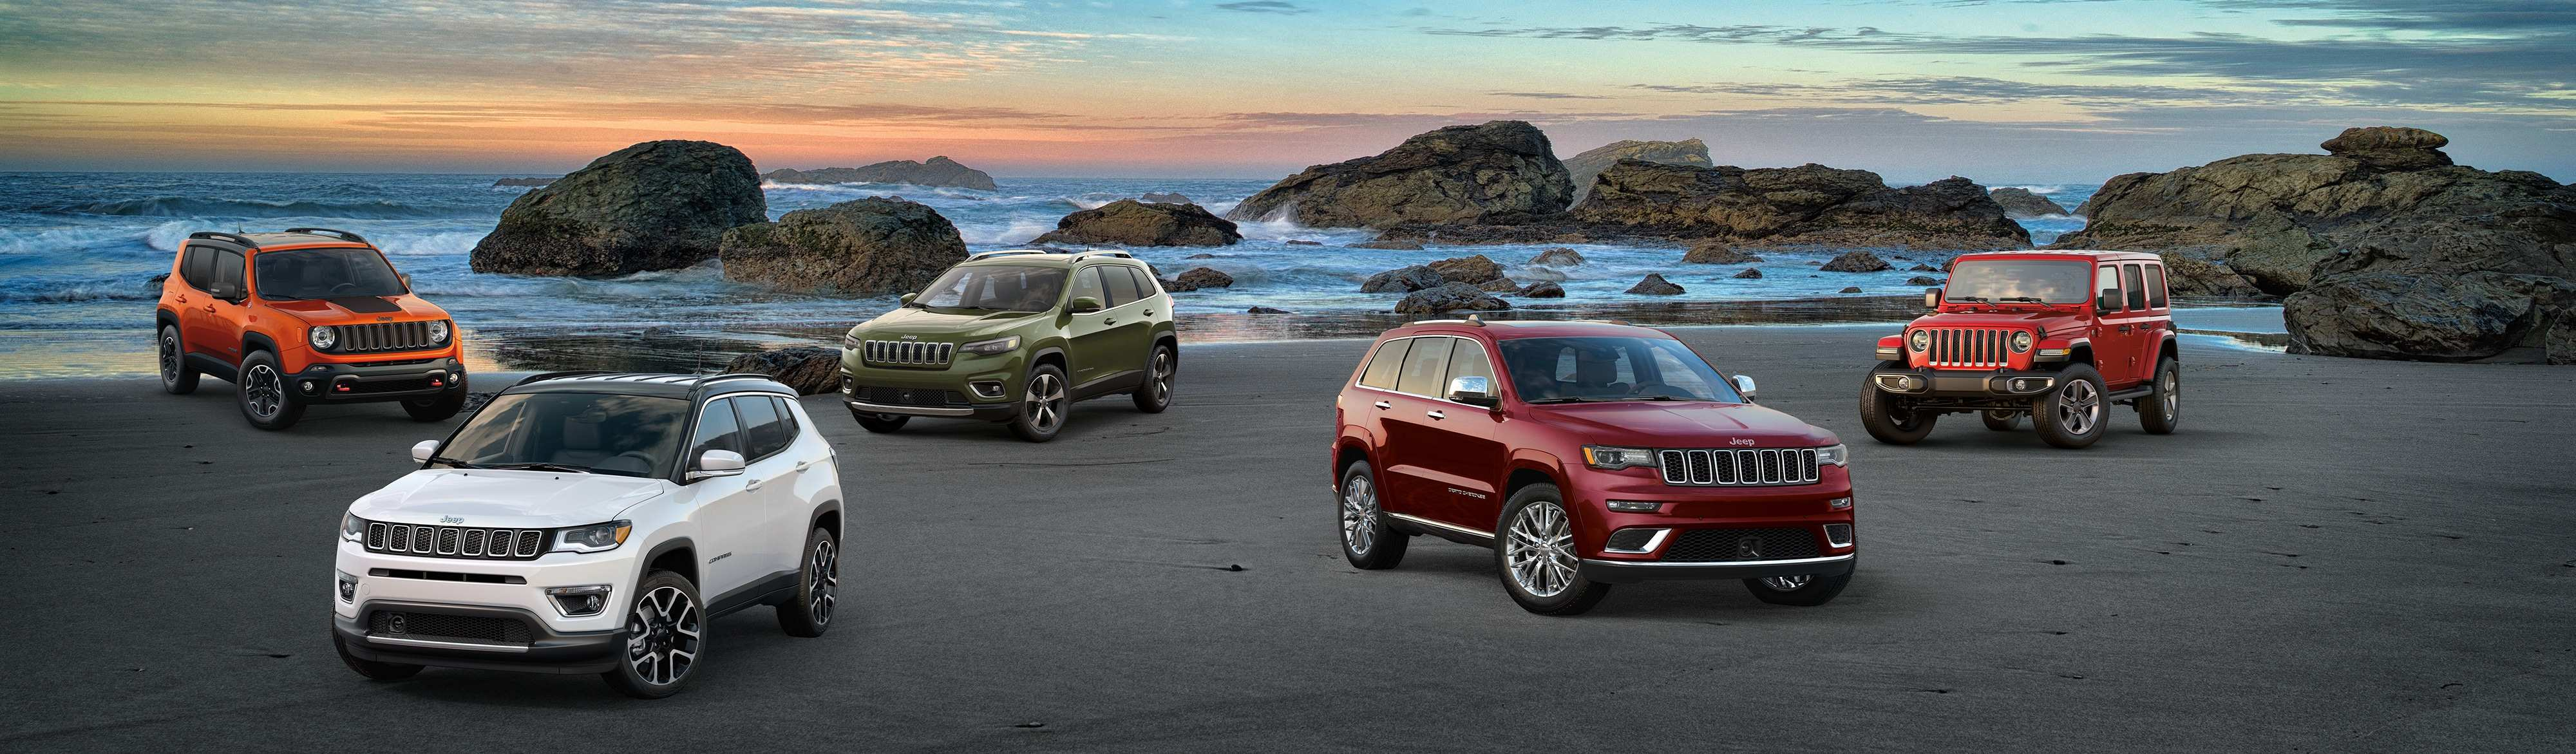 26 Best 2019 Jeep Lineup Exterior And Interior